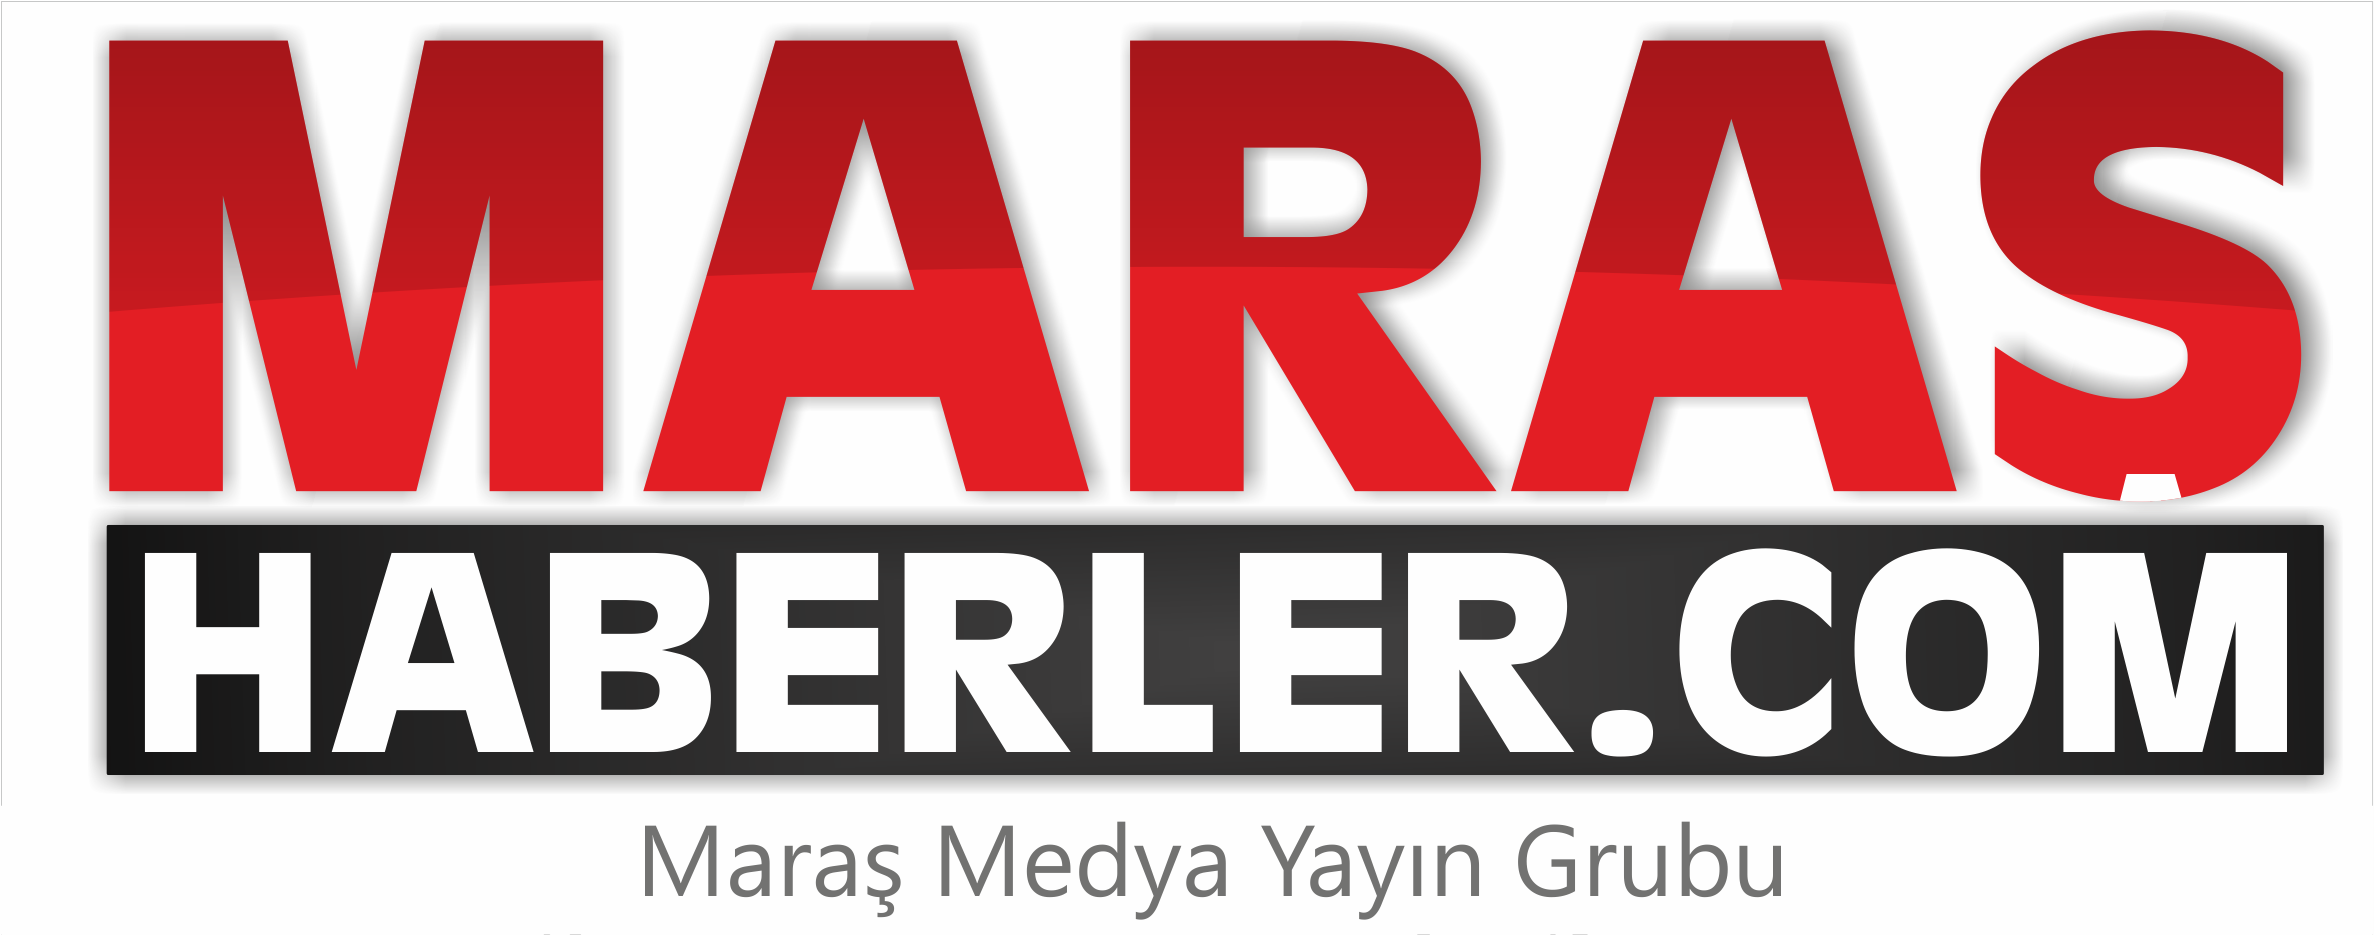 LİVA'DAN 19 MAYIS'A ÖZEL PROGRAM